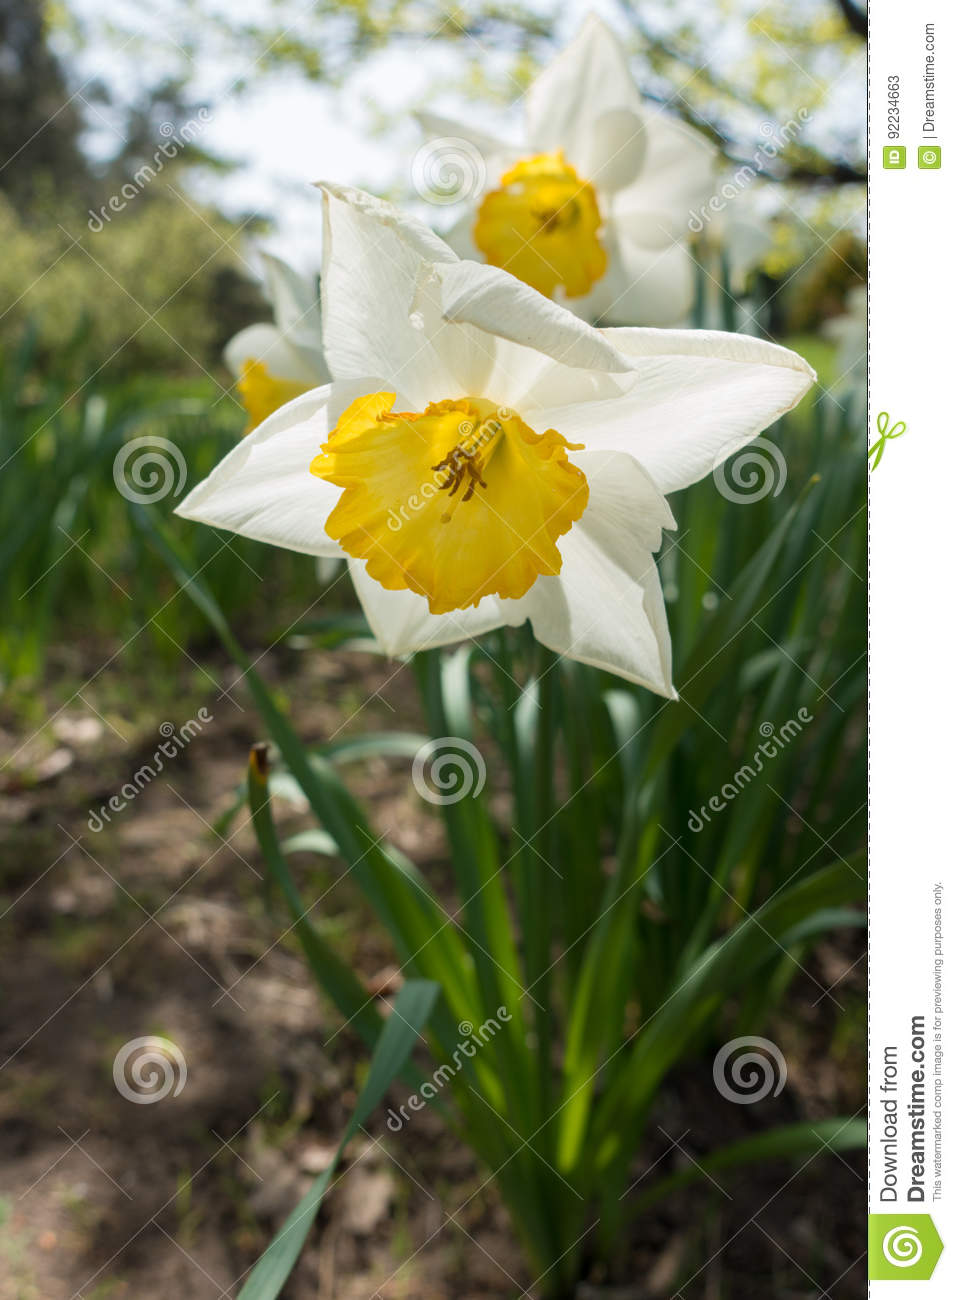 Close Up Of White Flower Of Narcissus With Yellow Trumpet Shaped